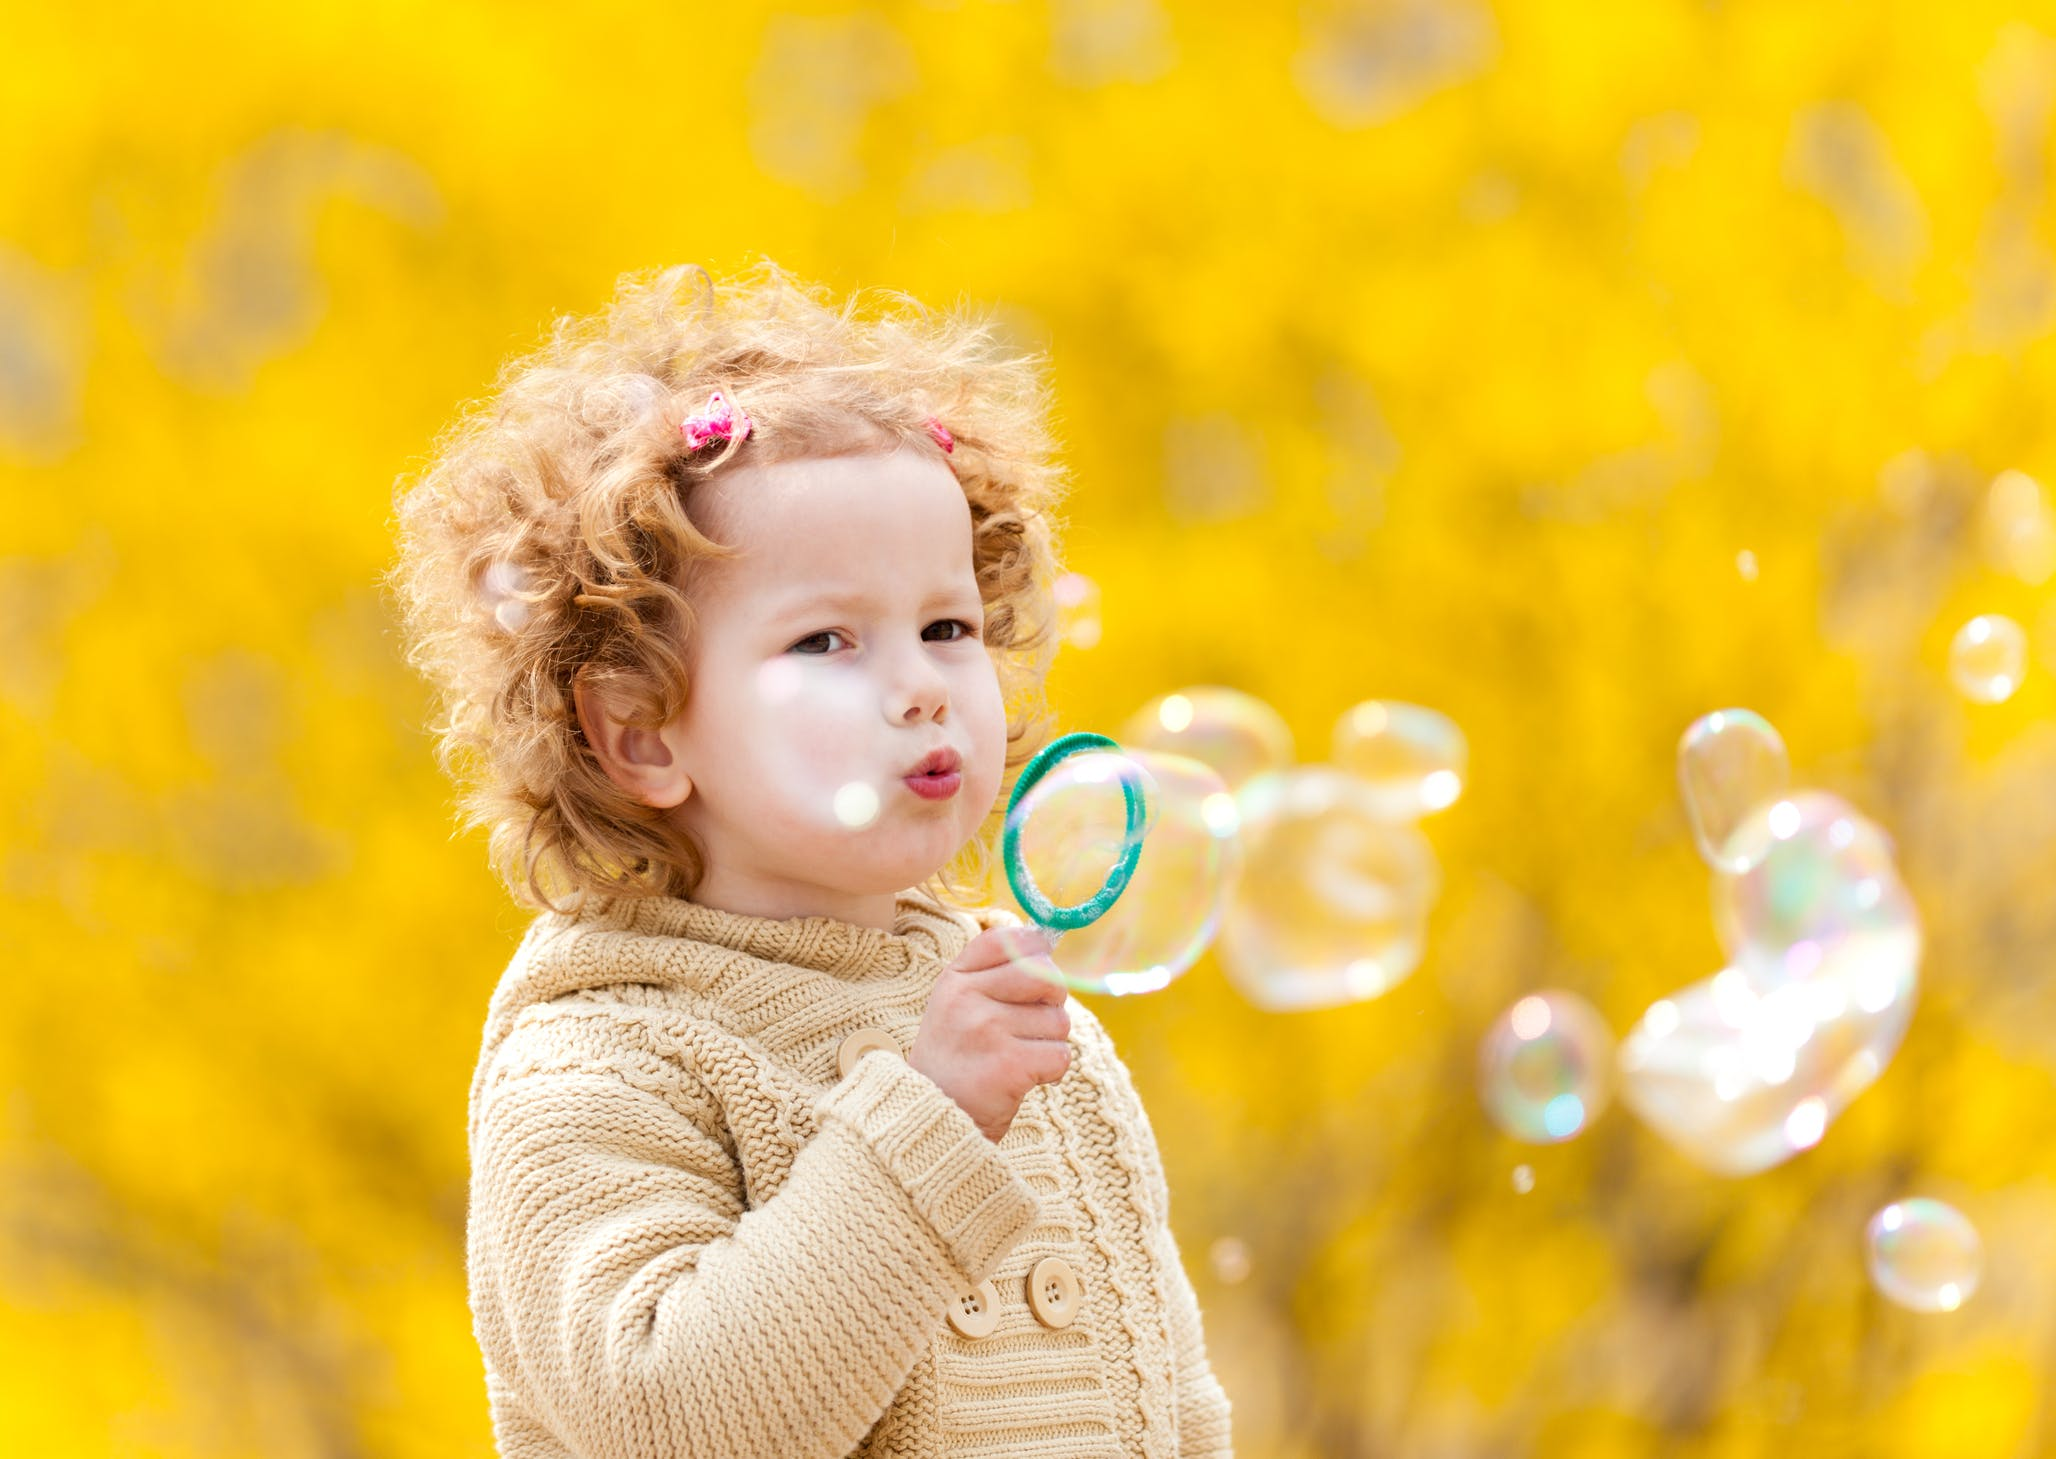 Redhead cute girl blowing bubbles.jpg?ixlib=rails 3.0